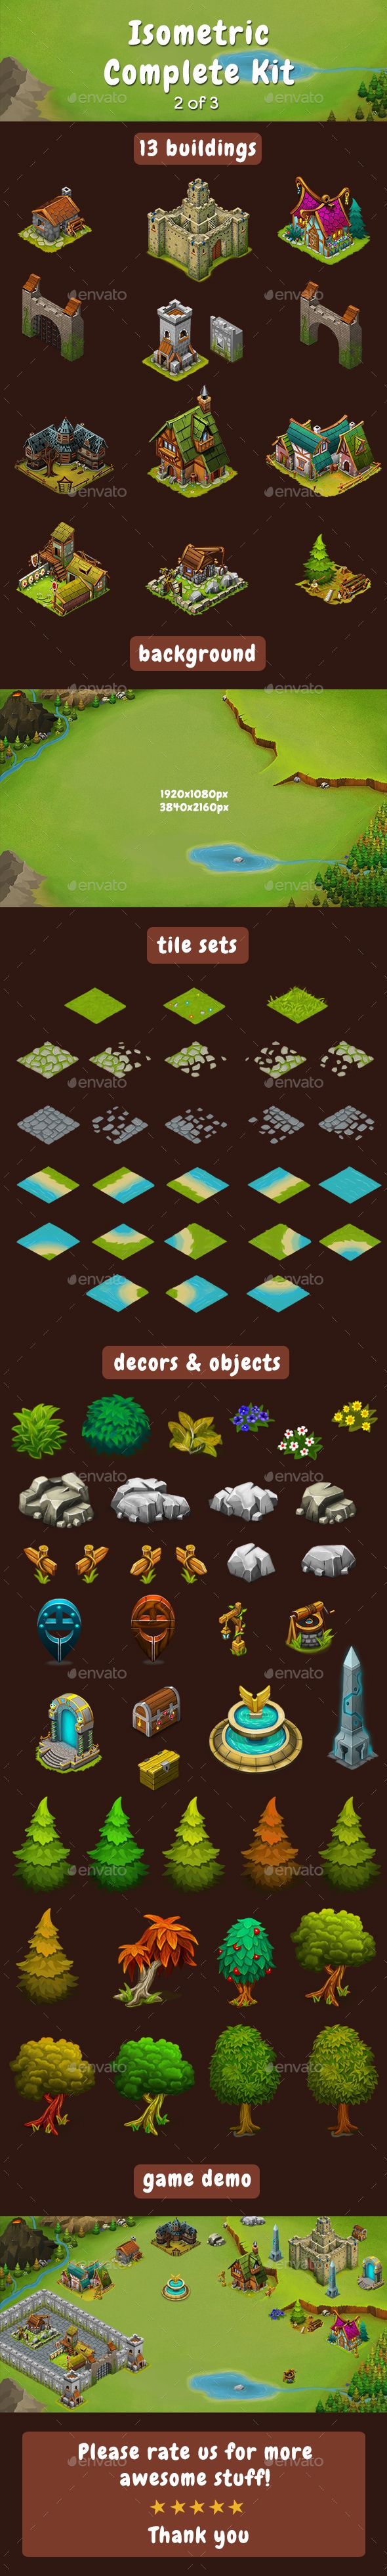 Isometric Game Kit 2 of 3  Towers, Background, Tilesets & more — Photoshop PSD #complete #isometric design • Available here → https://graphicriver.net/item/isometric-game-kit-2-of-3-towers-background-tilesets-more/17197844?ref=pxcr